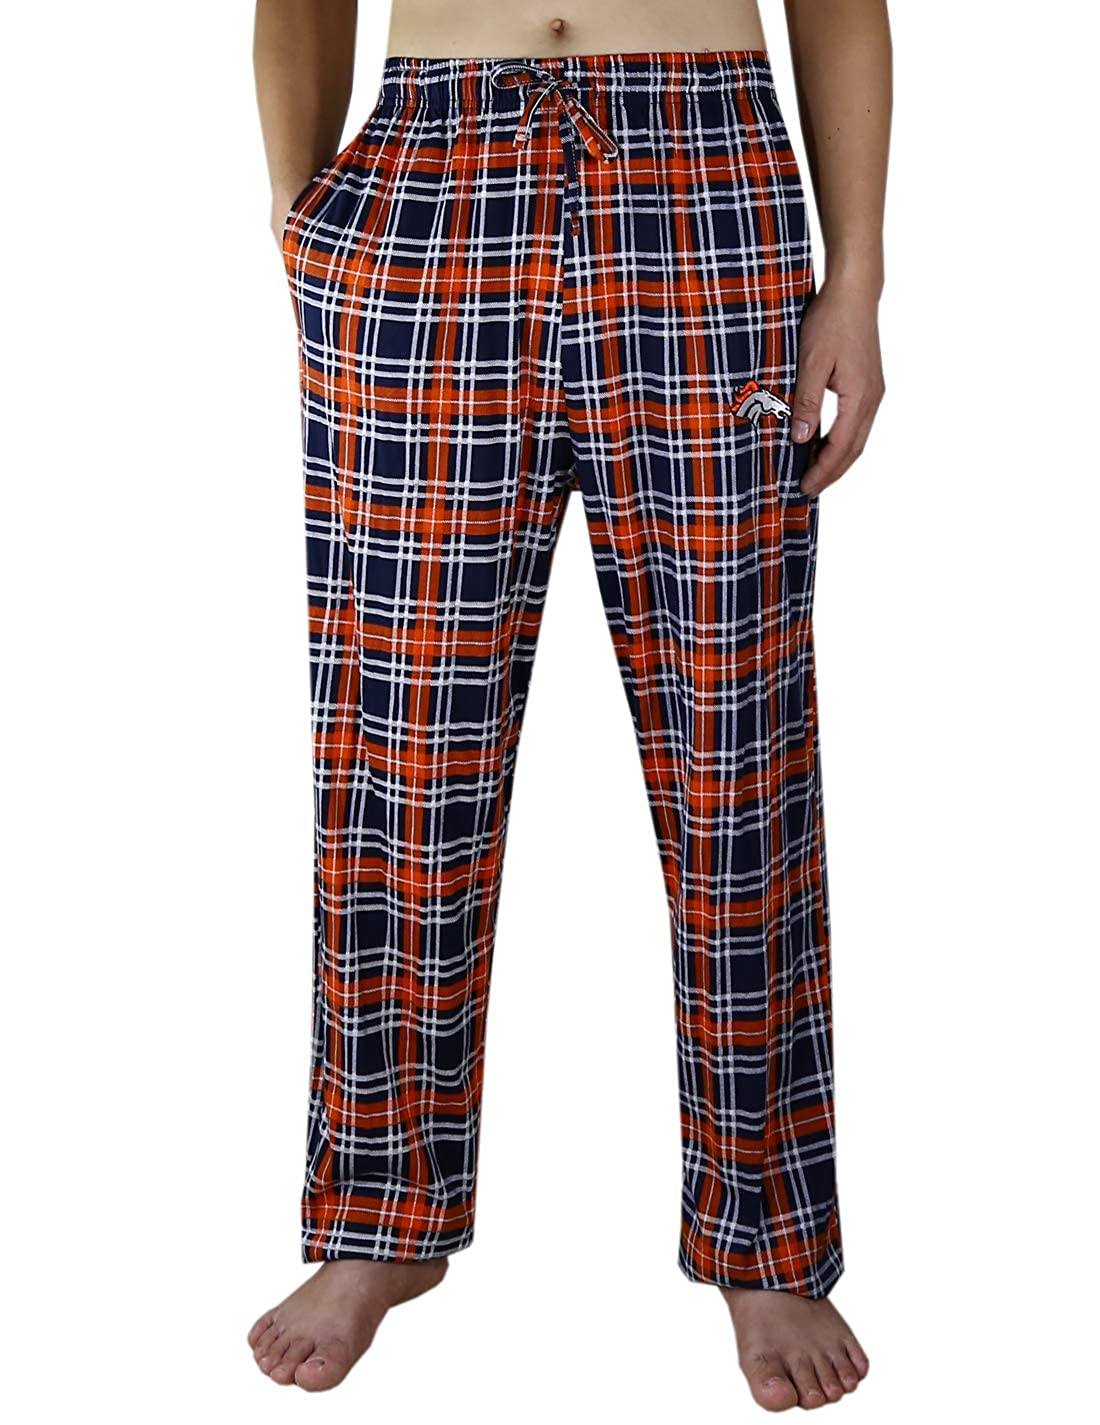 Mens Athletic Plaid Pajama Pants:DEN Broncos Mulitcolor